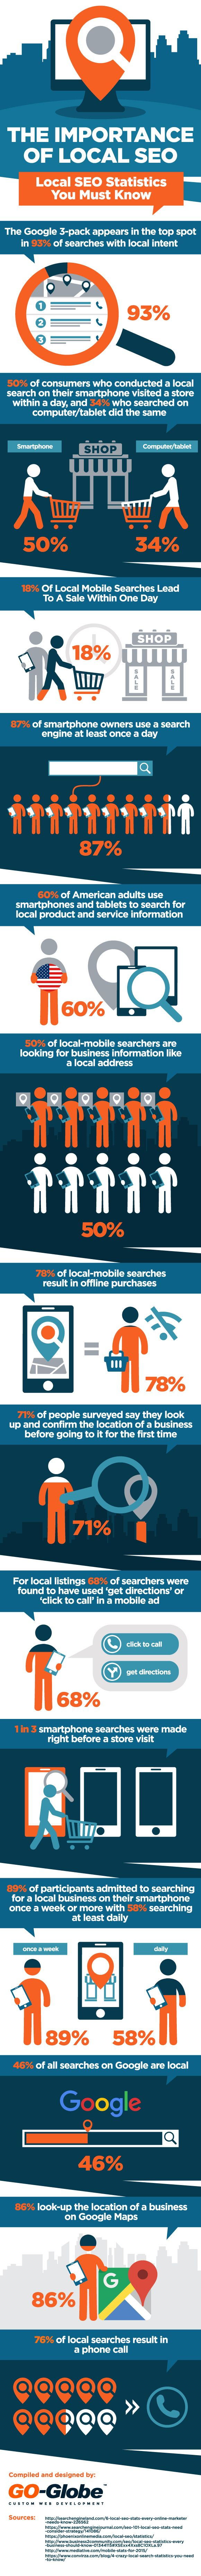 Think You Don't Need Local SEO? 18 Stats That Show You Do #Infographic http://www.brandvisioninc.com